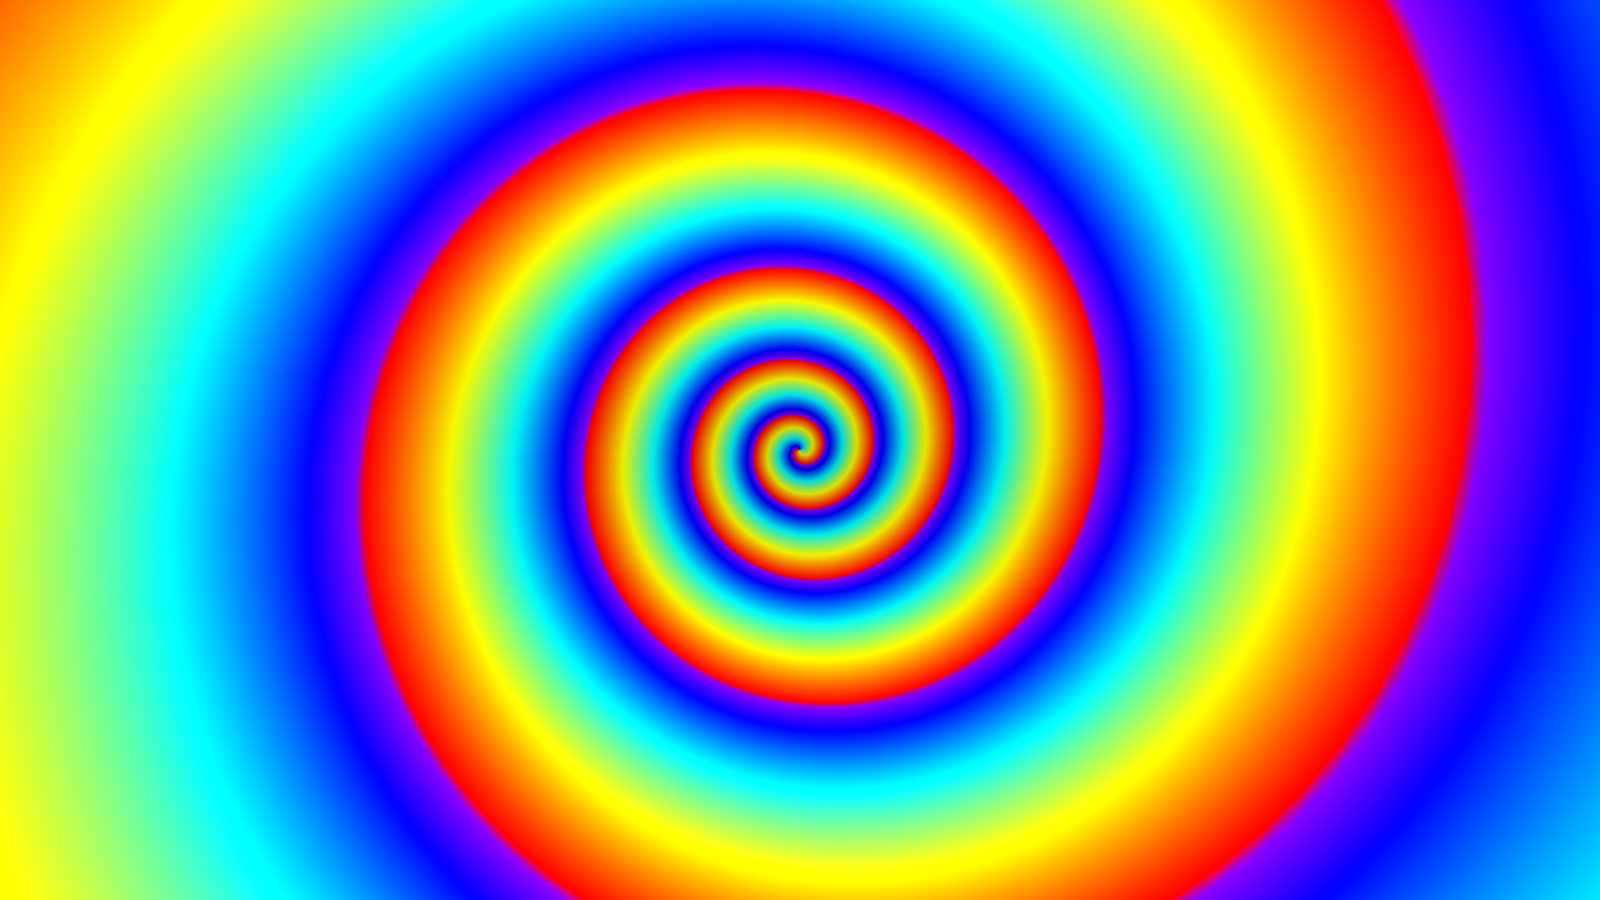 Hypno Spiral Android Apps On Google Play